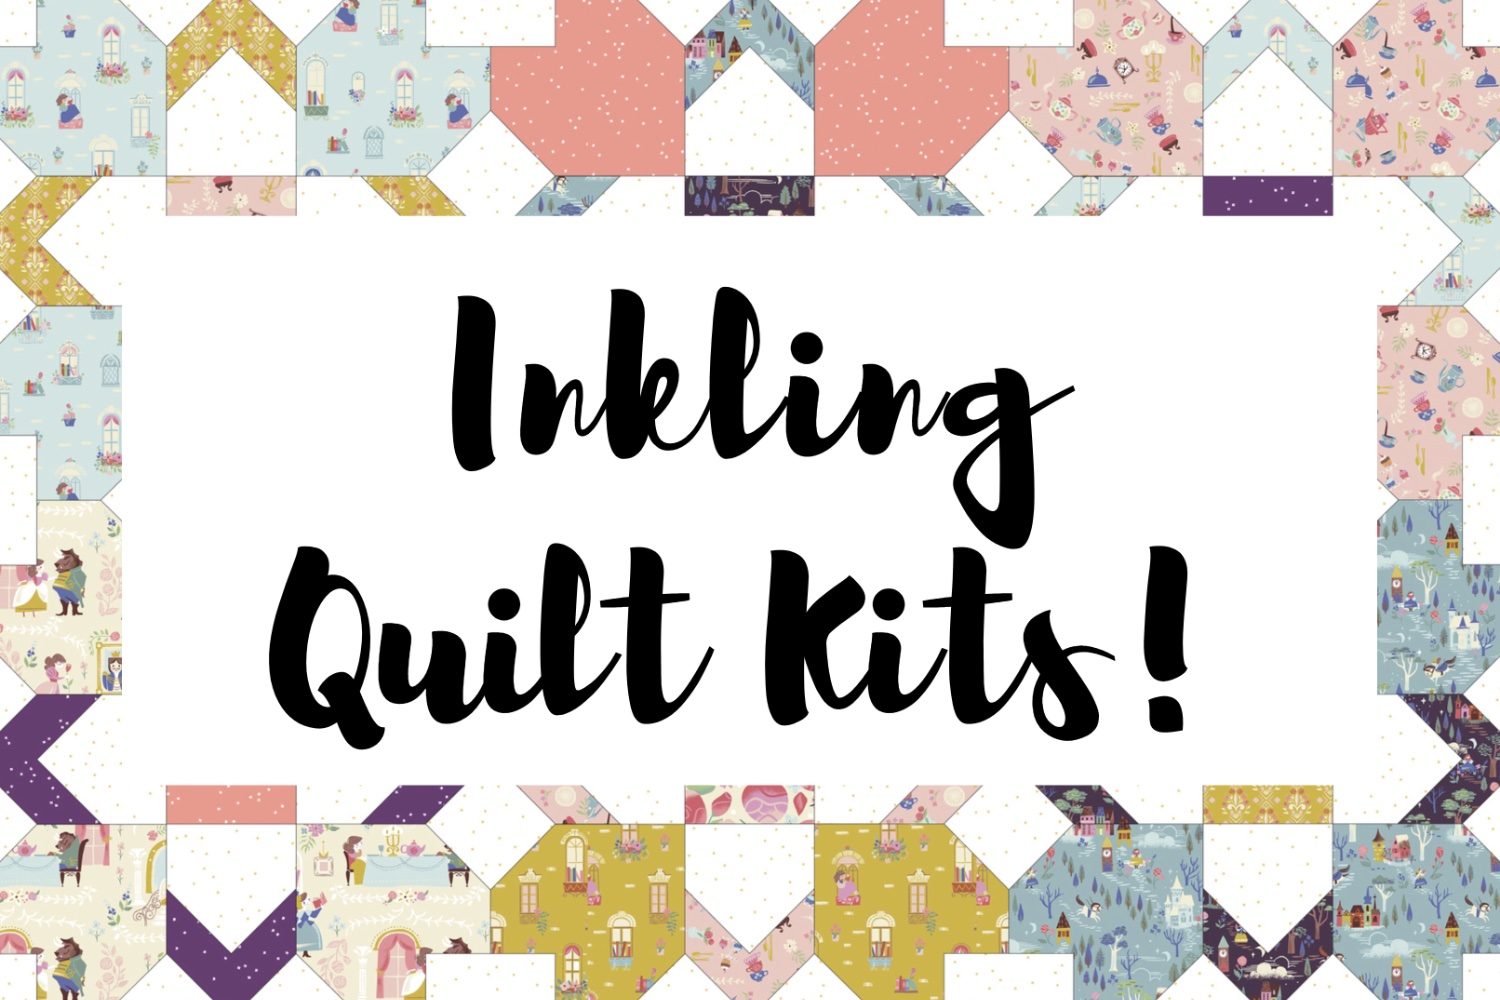 Inkling Quilt Kits!